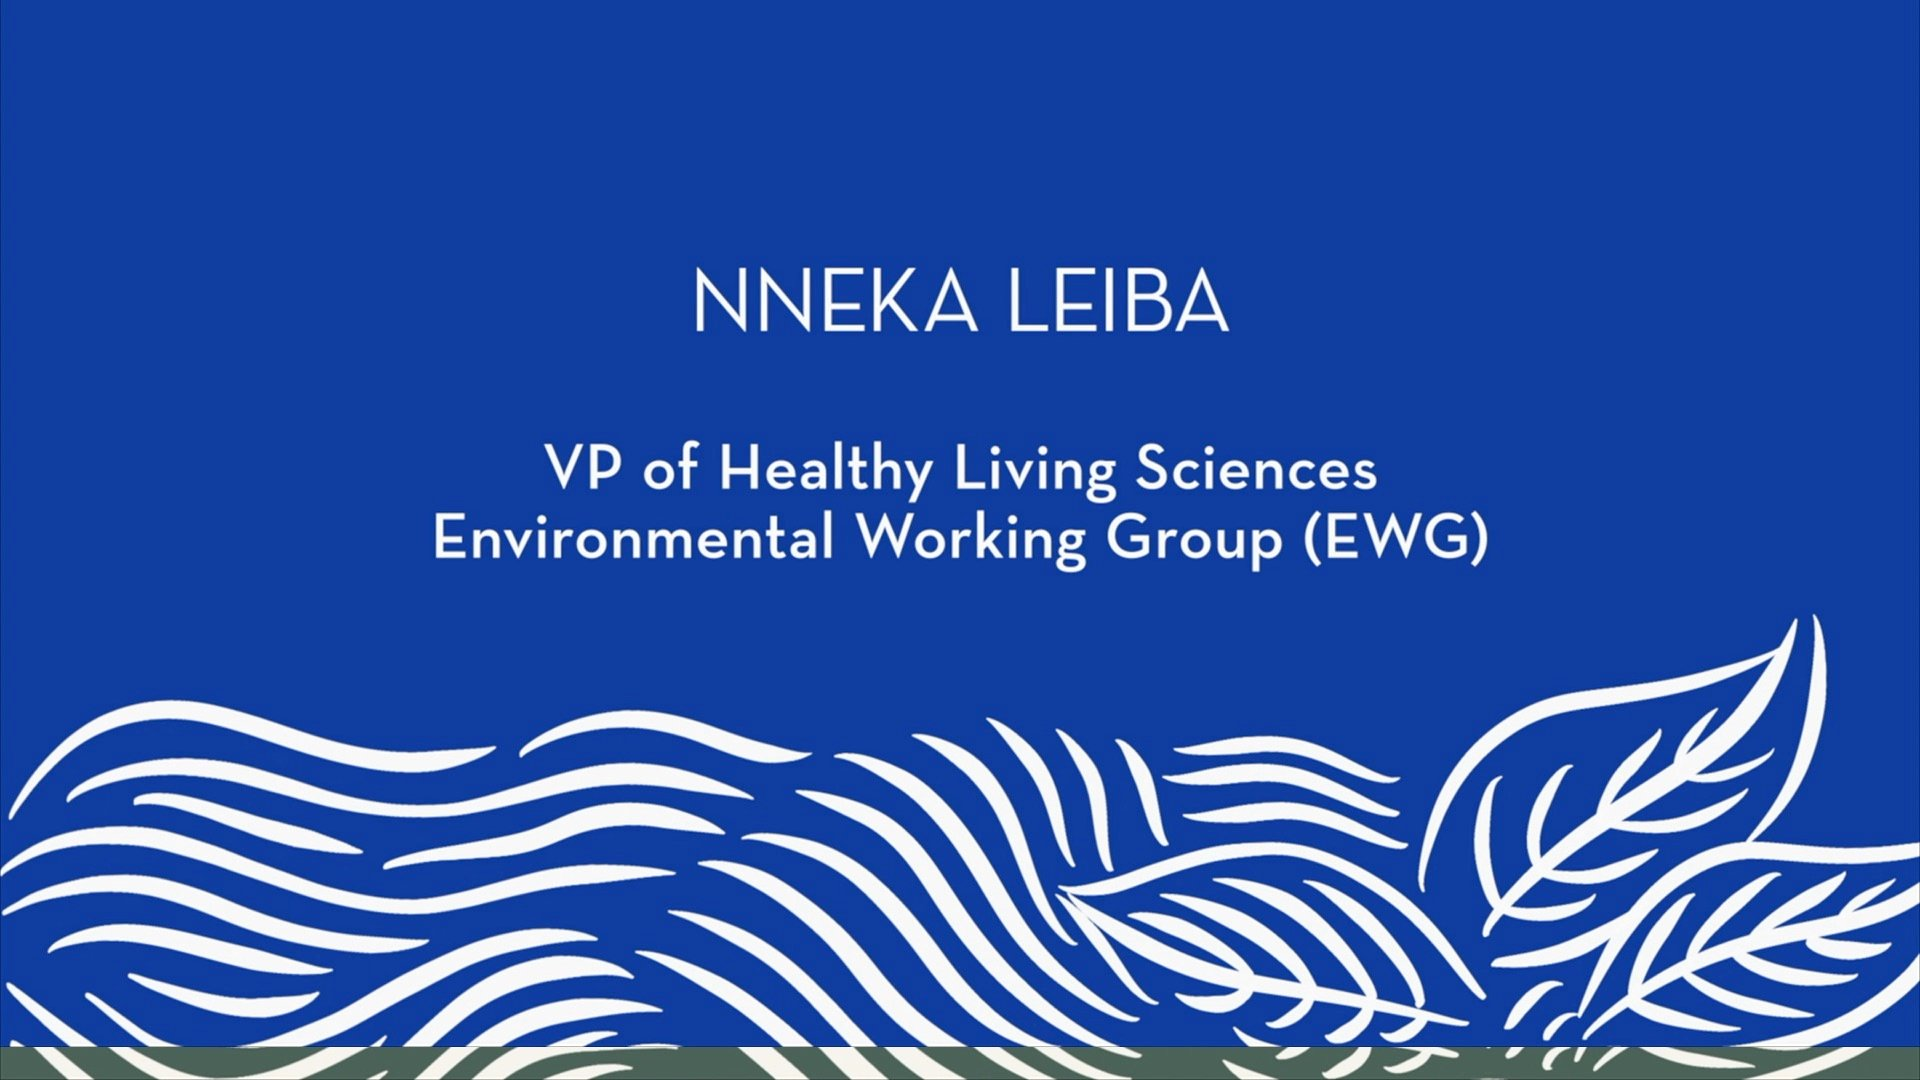 Nneka Leiba | Introduction